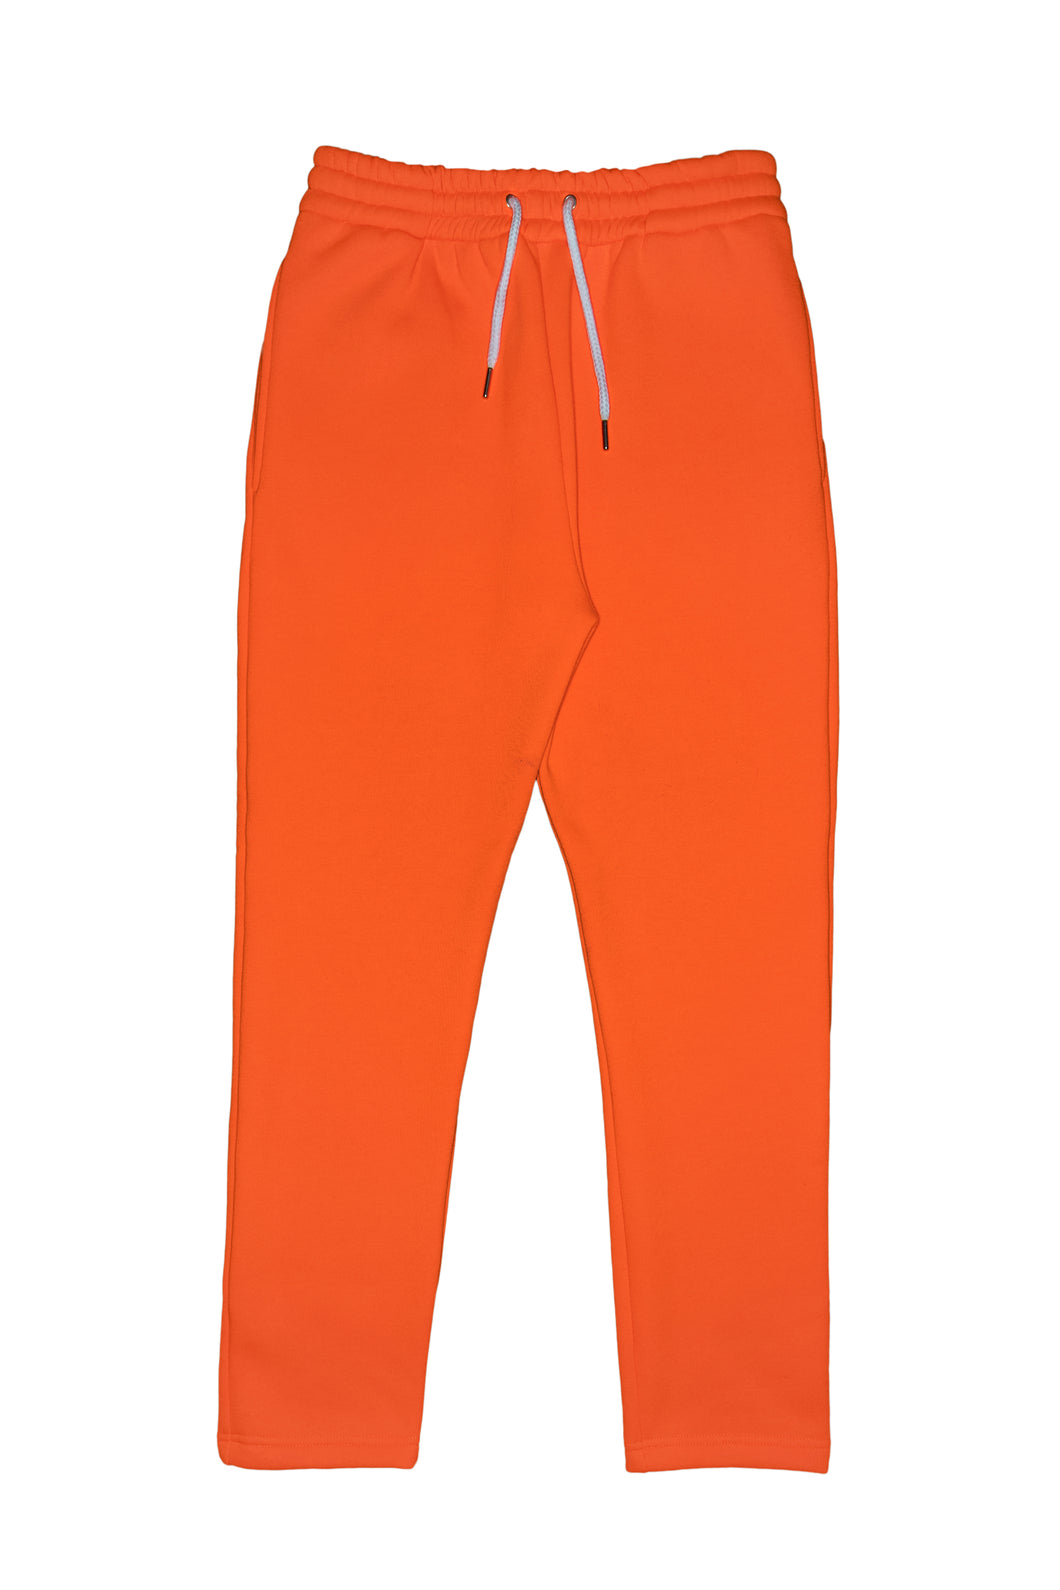 Orange Sweatpants